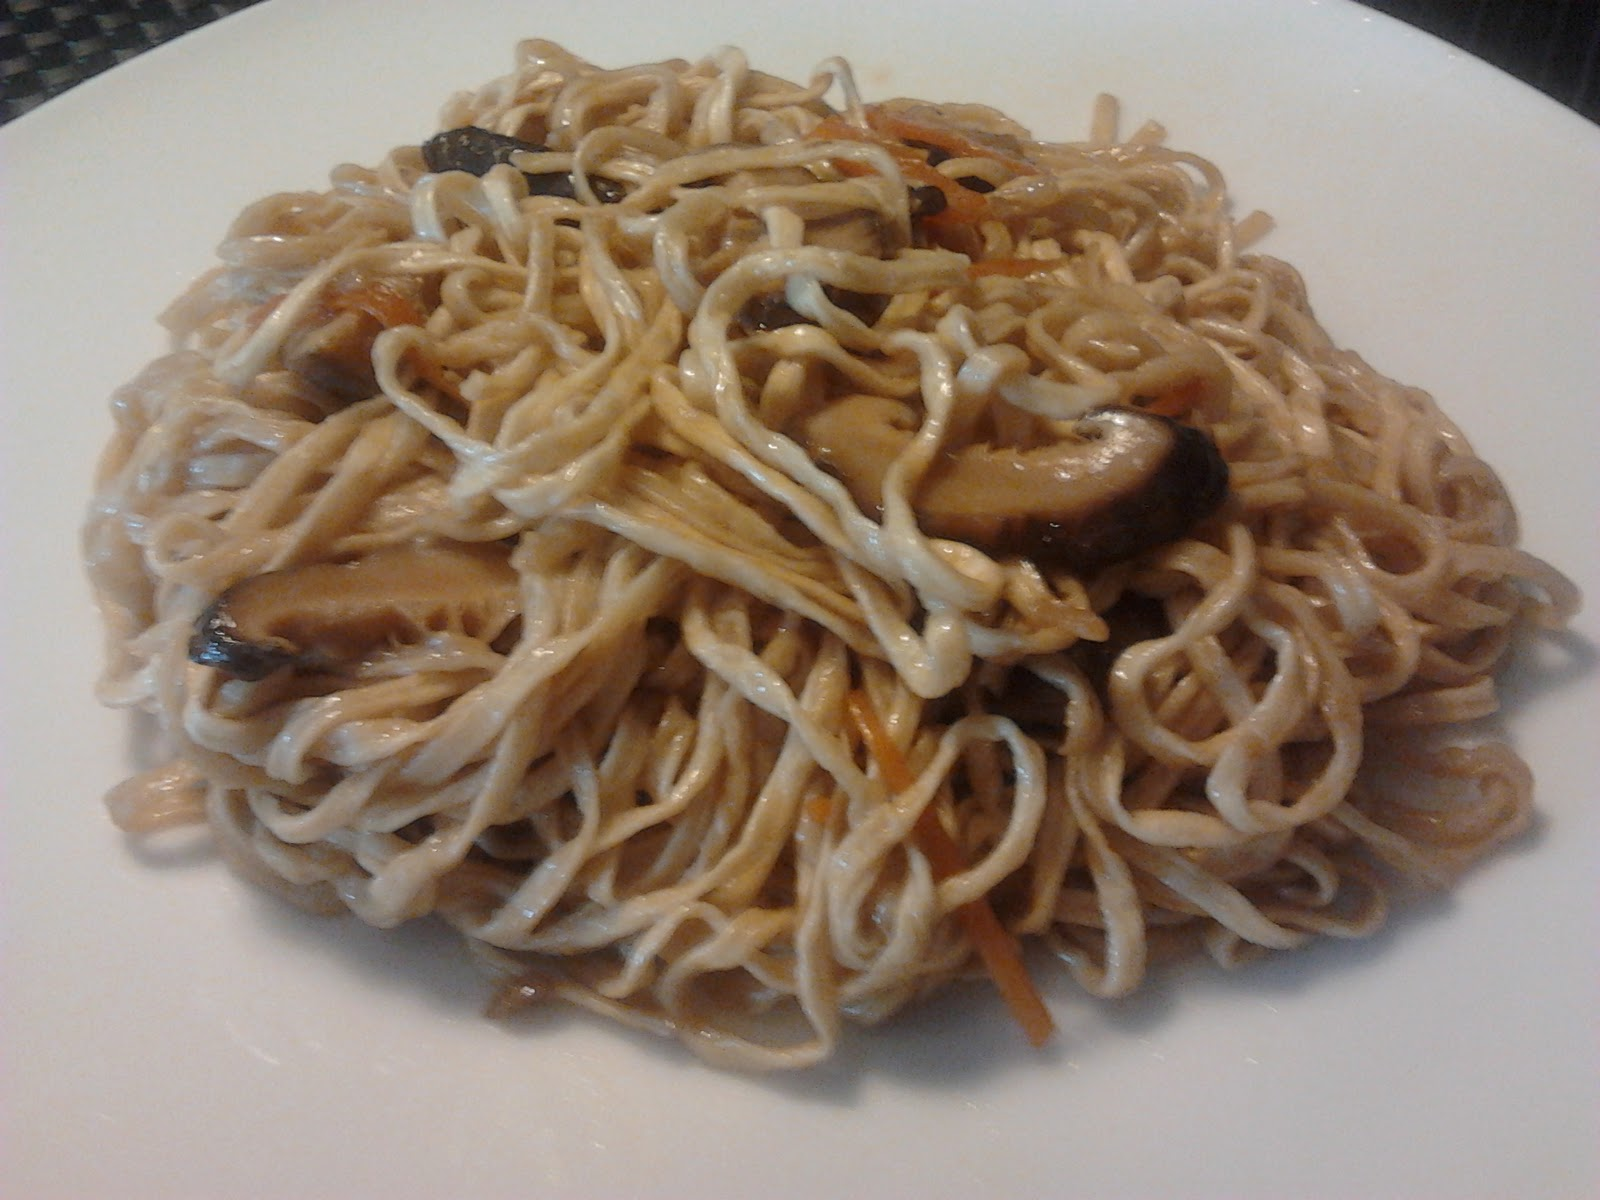 Shan S Recipes Braised Ee Fu Mian Noodle With Chinese Mushrooms Hong Kong Yee Mian